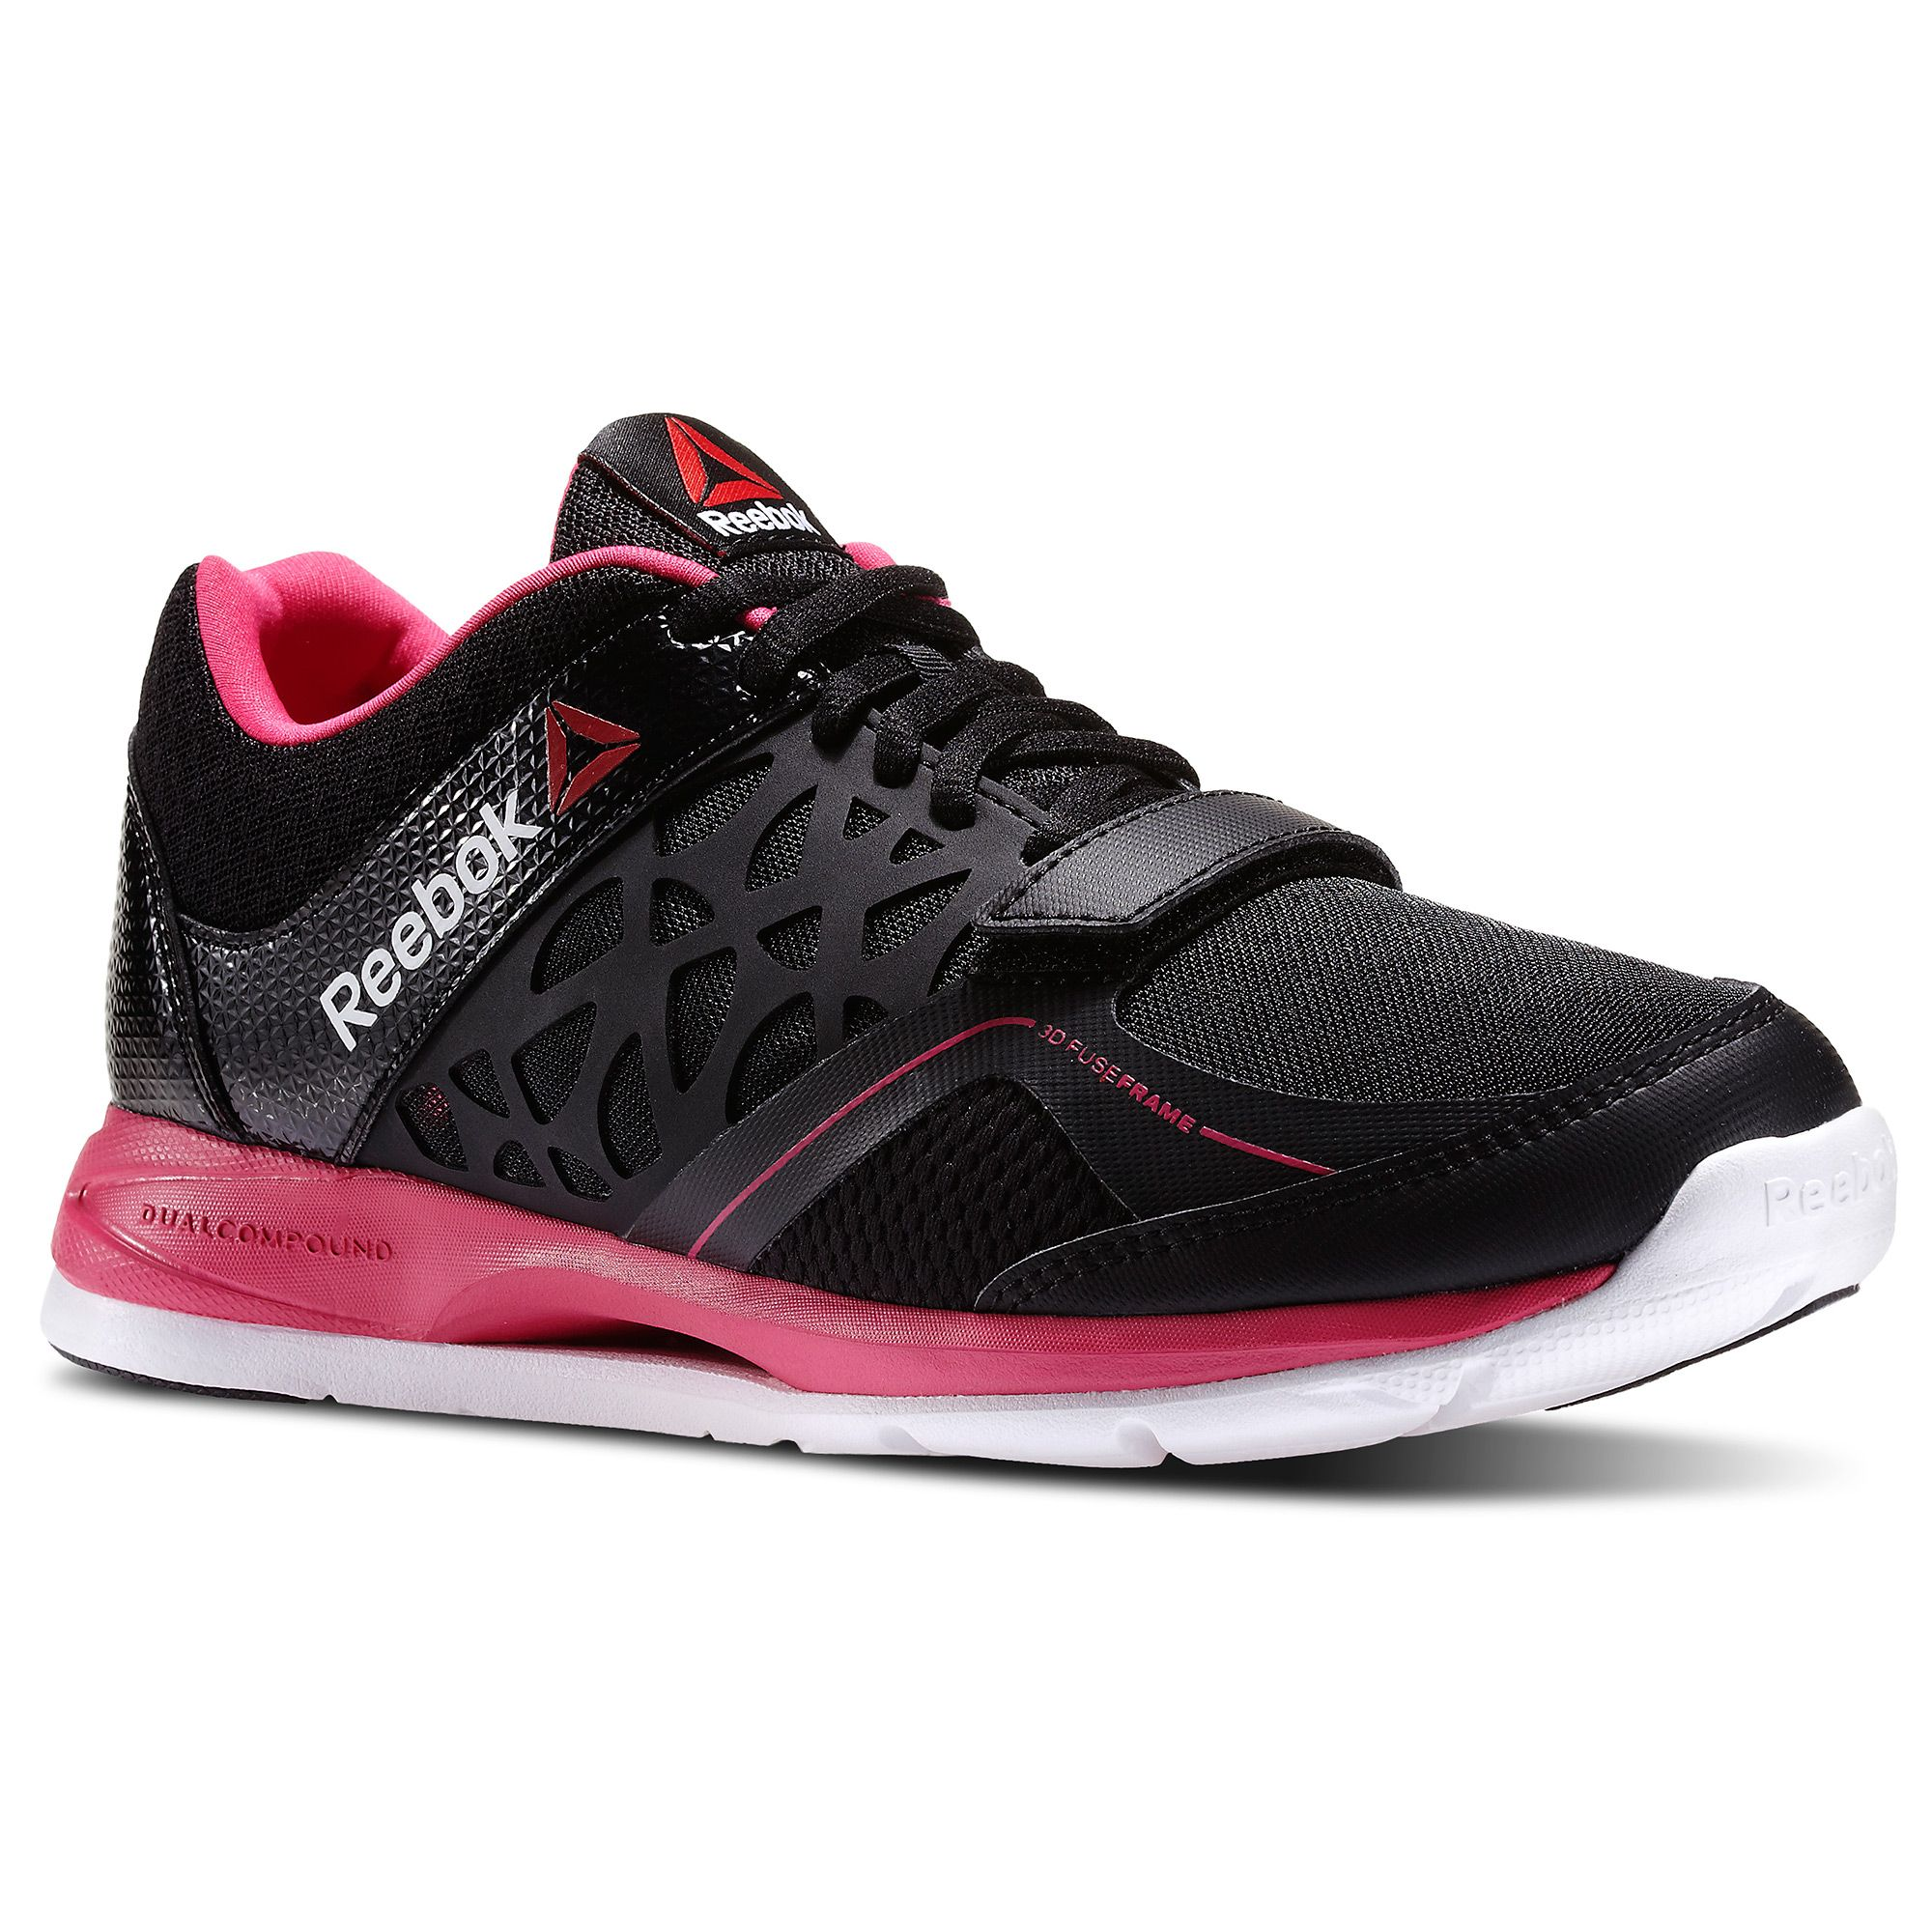 Reebok-running-shoes-and-sportsshoes-for-women (26)